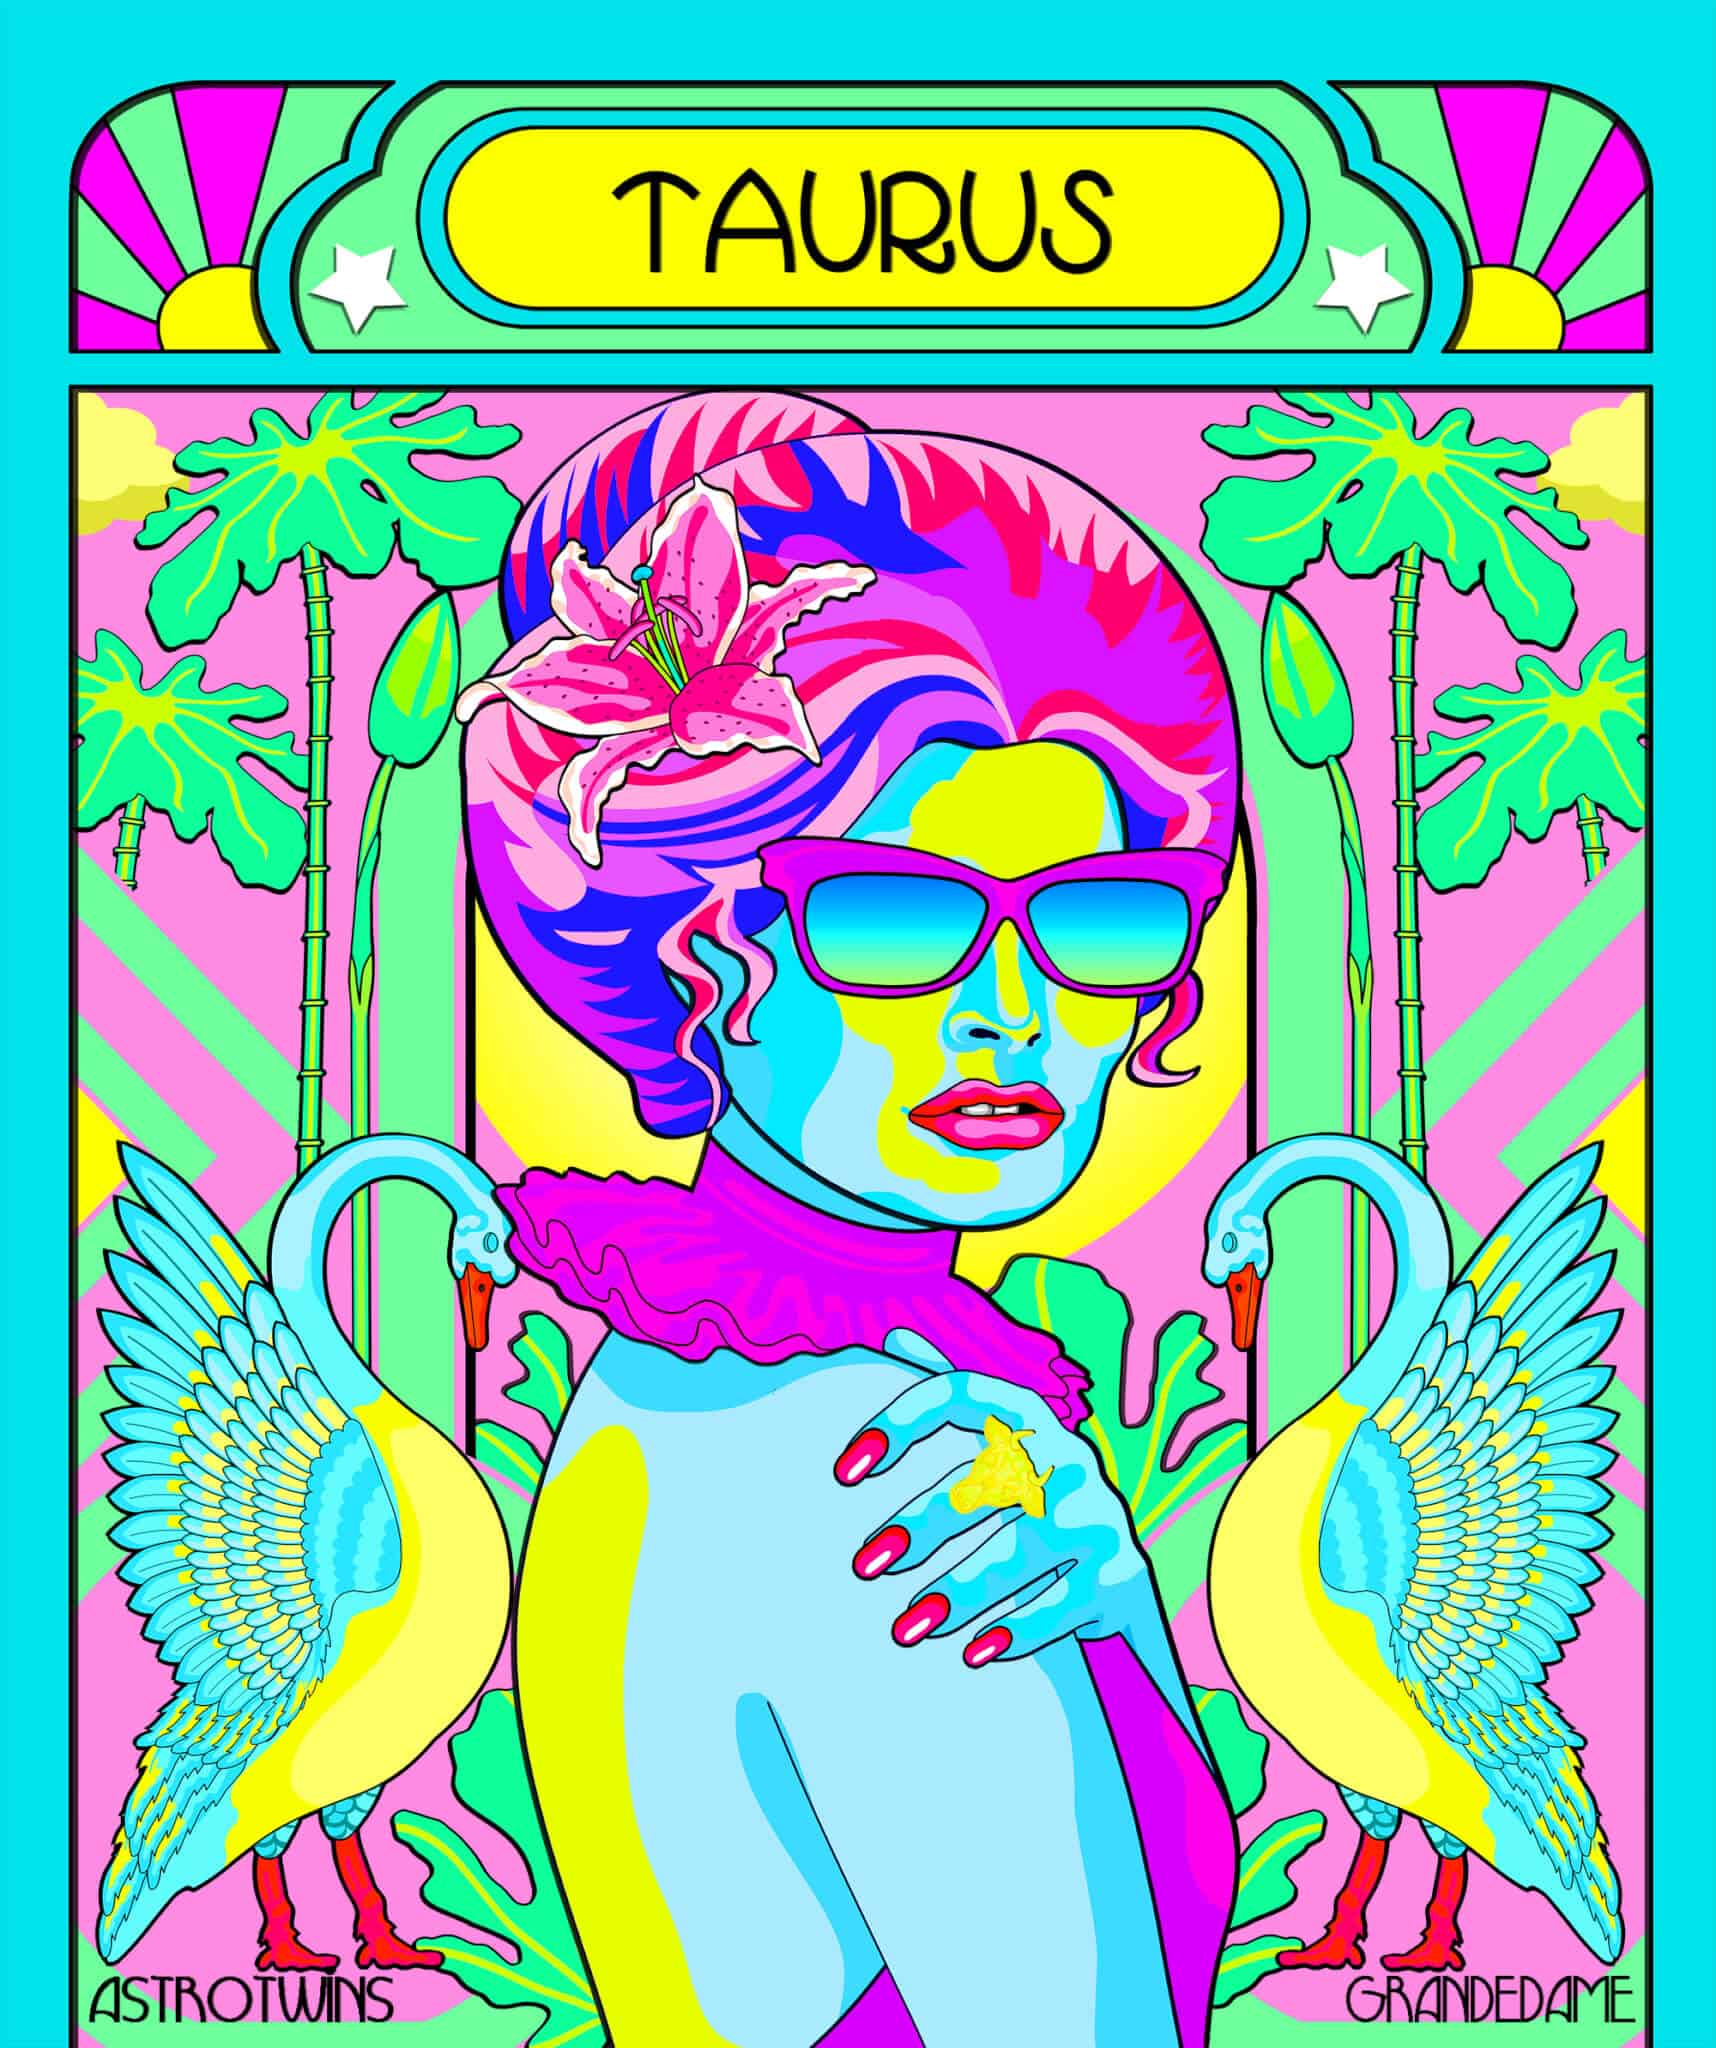 taurus season 2021 astrology article by the astrotwins on astrostyle.com